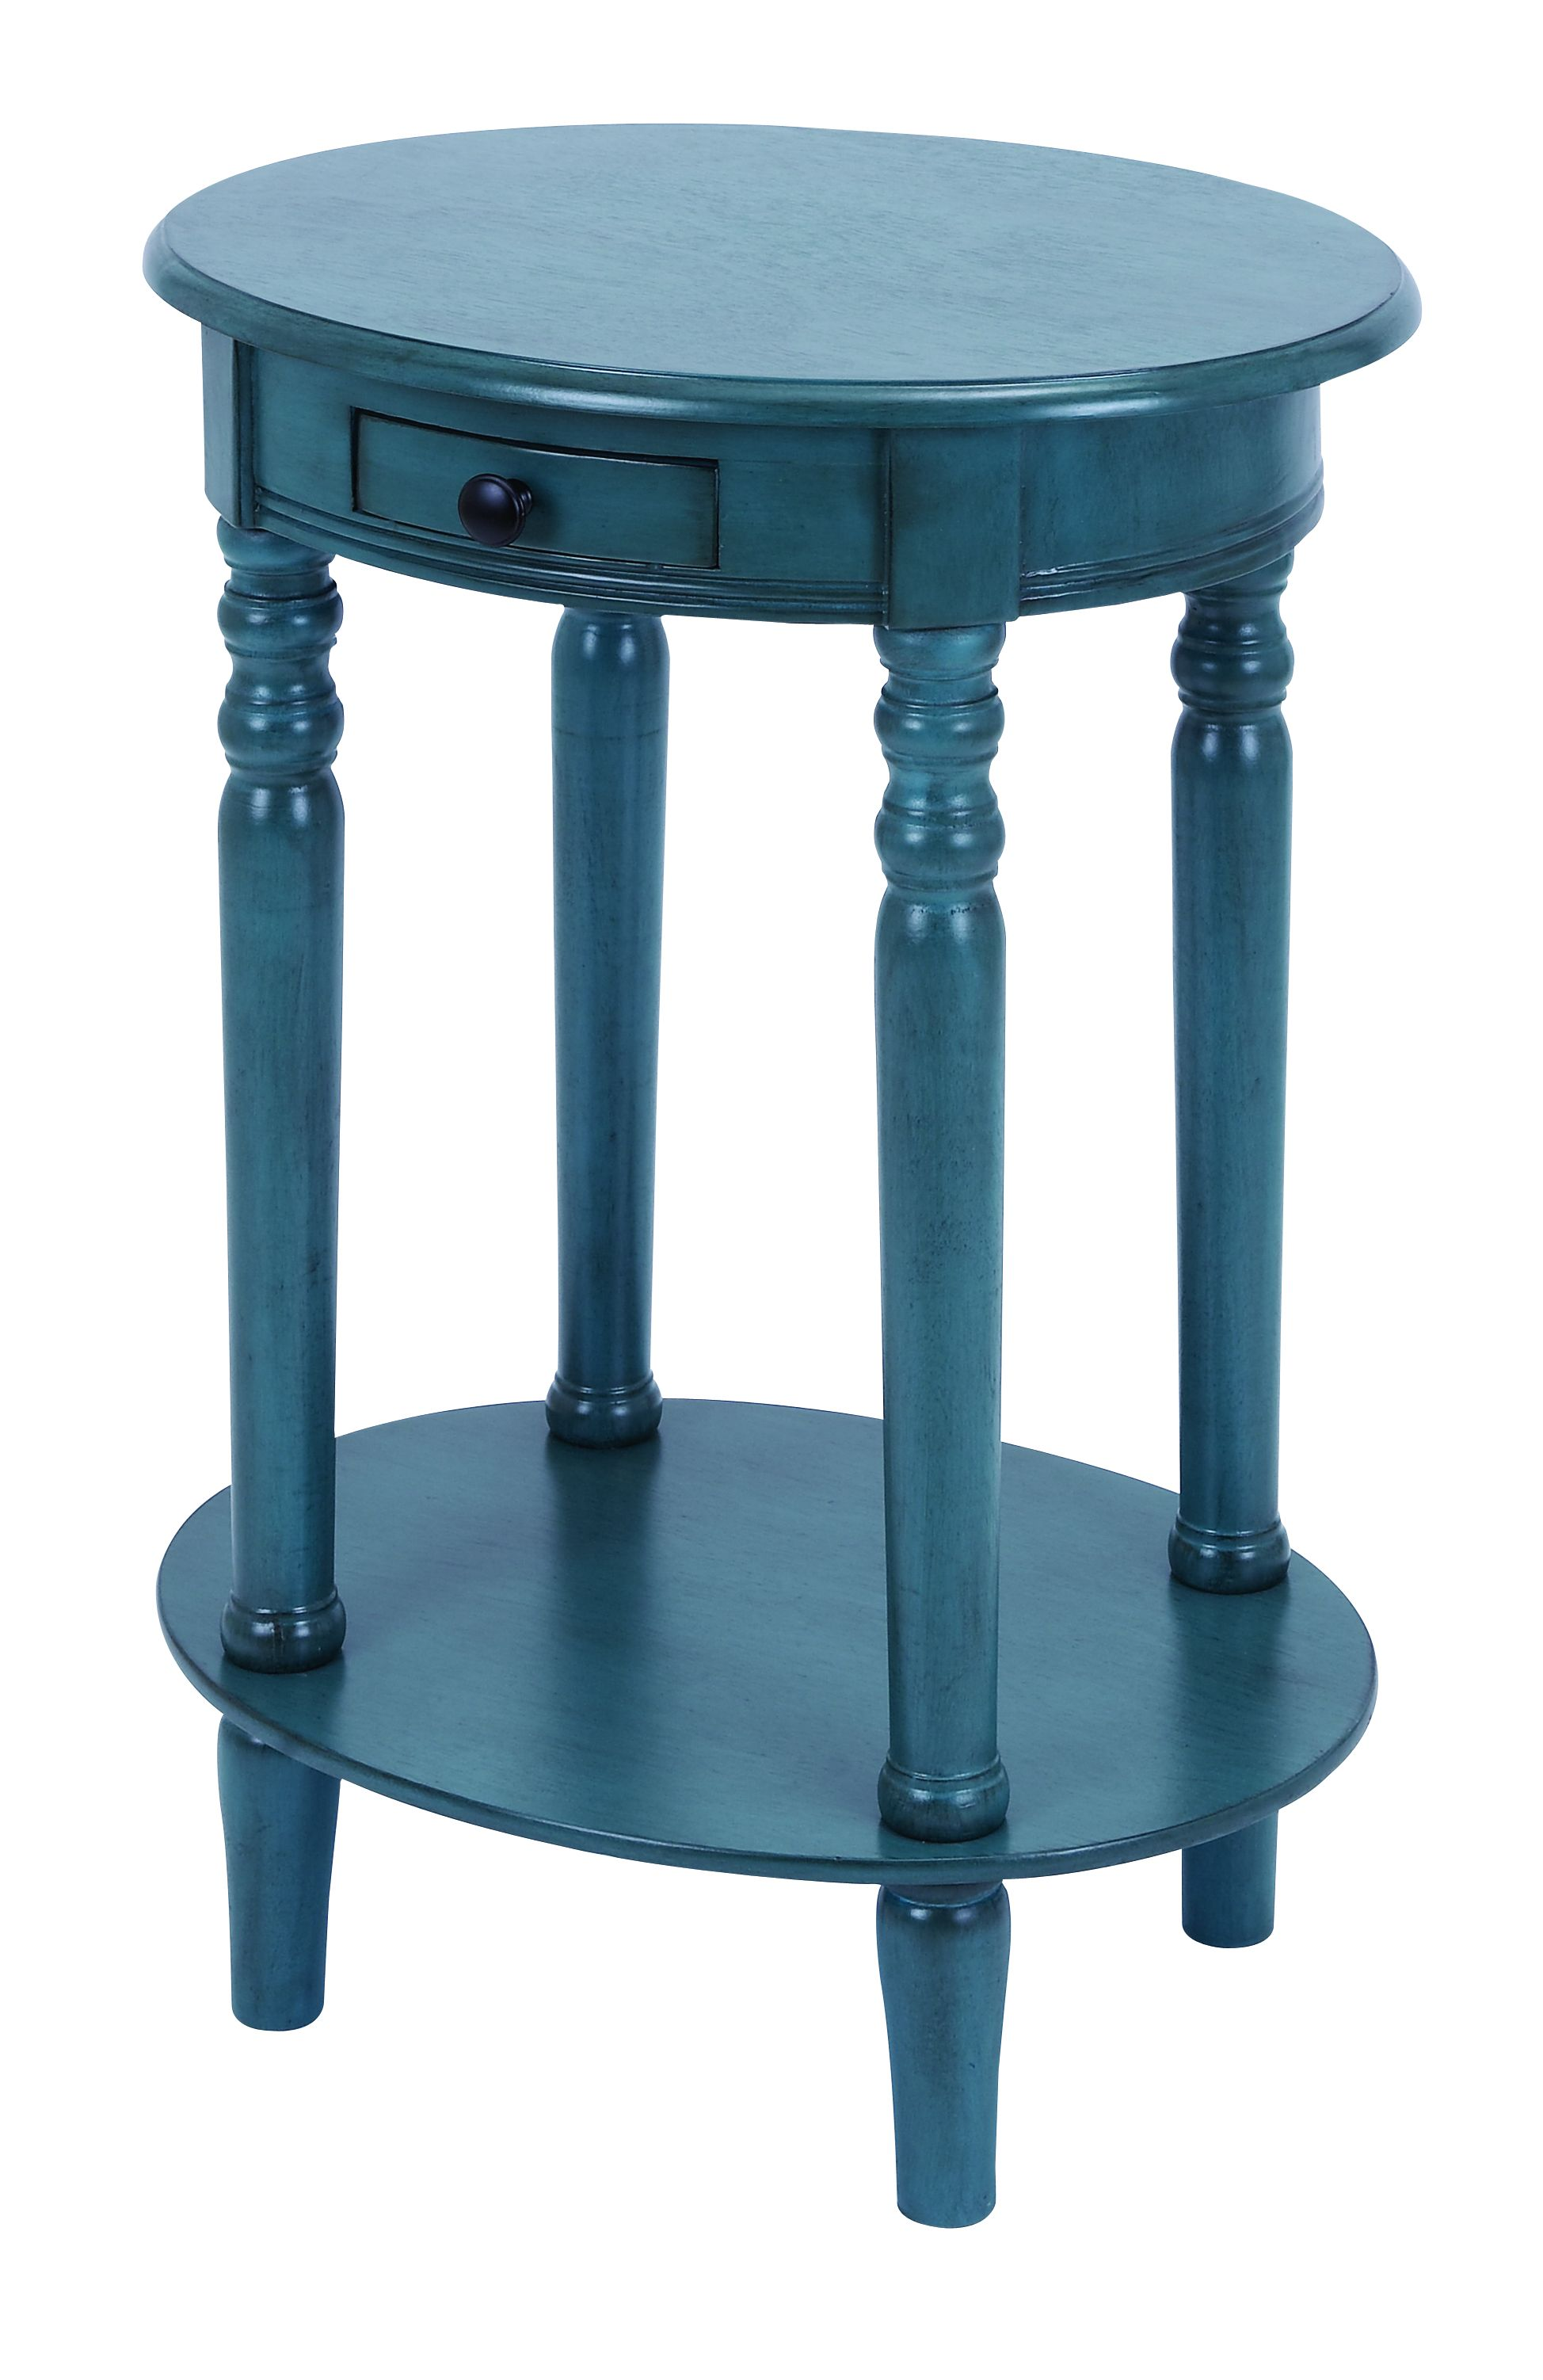 classic accent table with mahogany aqua blue ceramic teal round rattan side pendant lighting resin wicker furniture clear plastic clearance dining room chairs outdoor cover